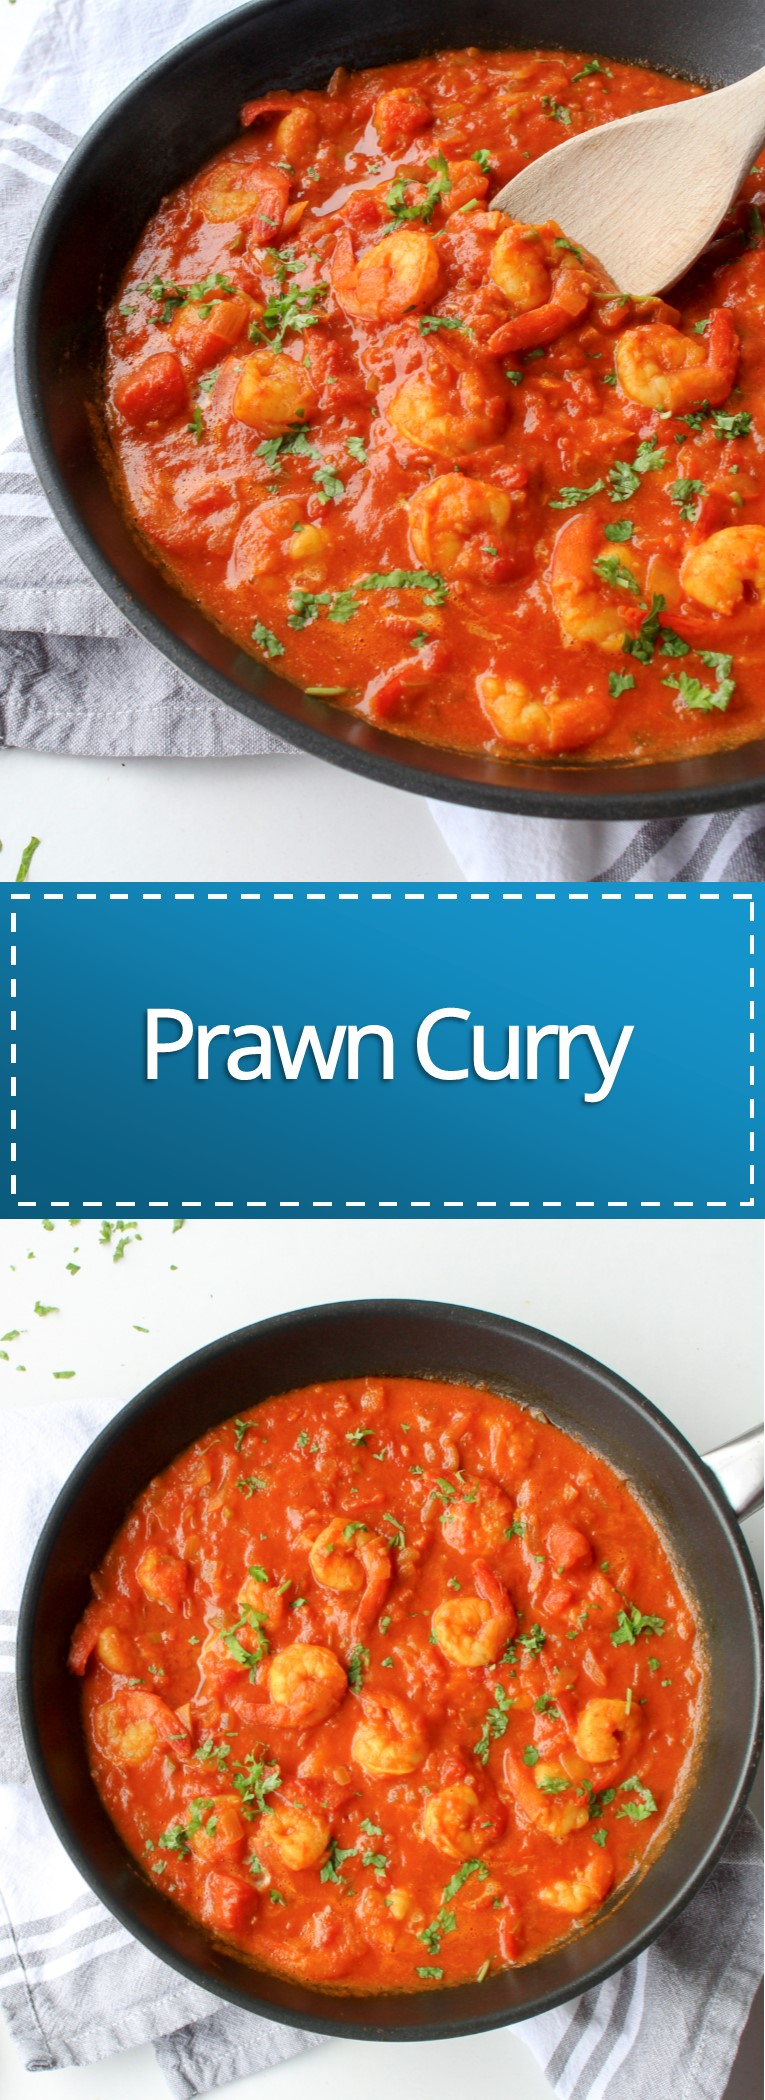 Quick and easy prawn curry! #curry #foodforfitness #prawn #shrimp